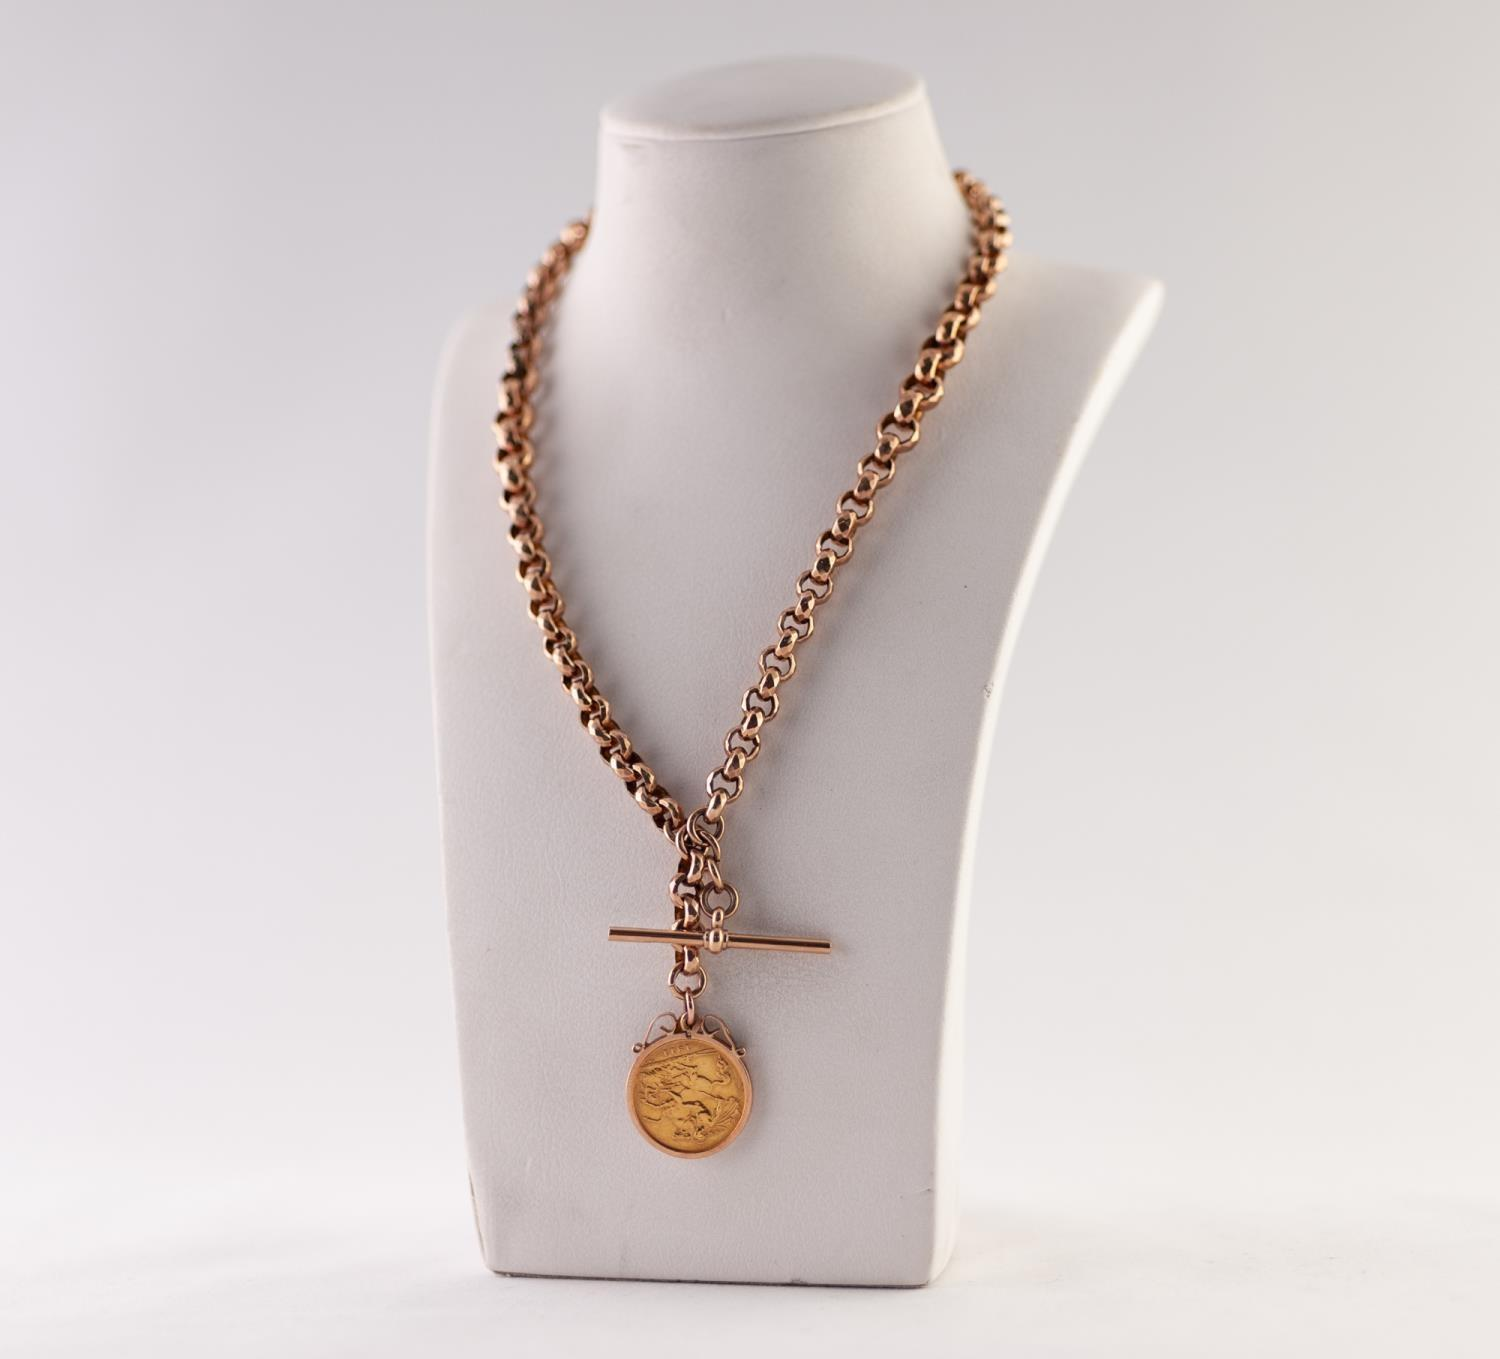 Lot 198 - FACETED BELCHER CHAIN ALBERT CHAIN, with T-bar and clip, stamped '9CT', SUPENDING A LOOSE MOUNT